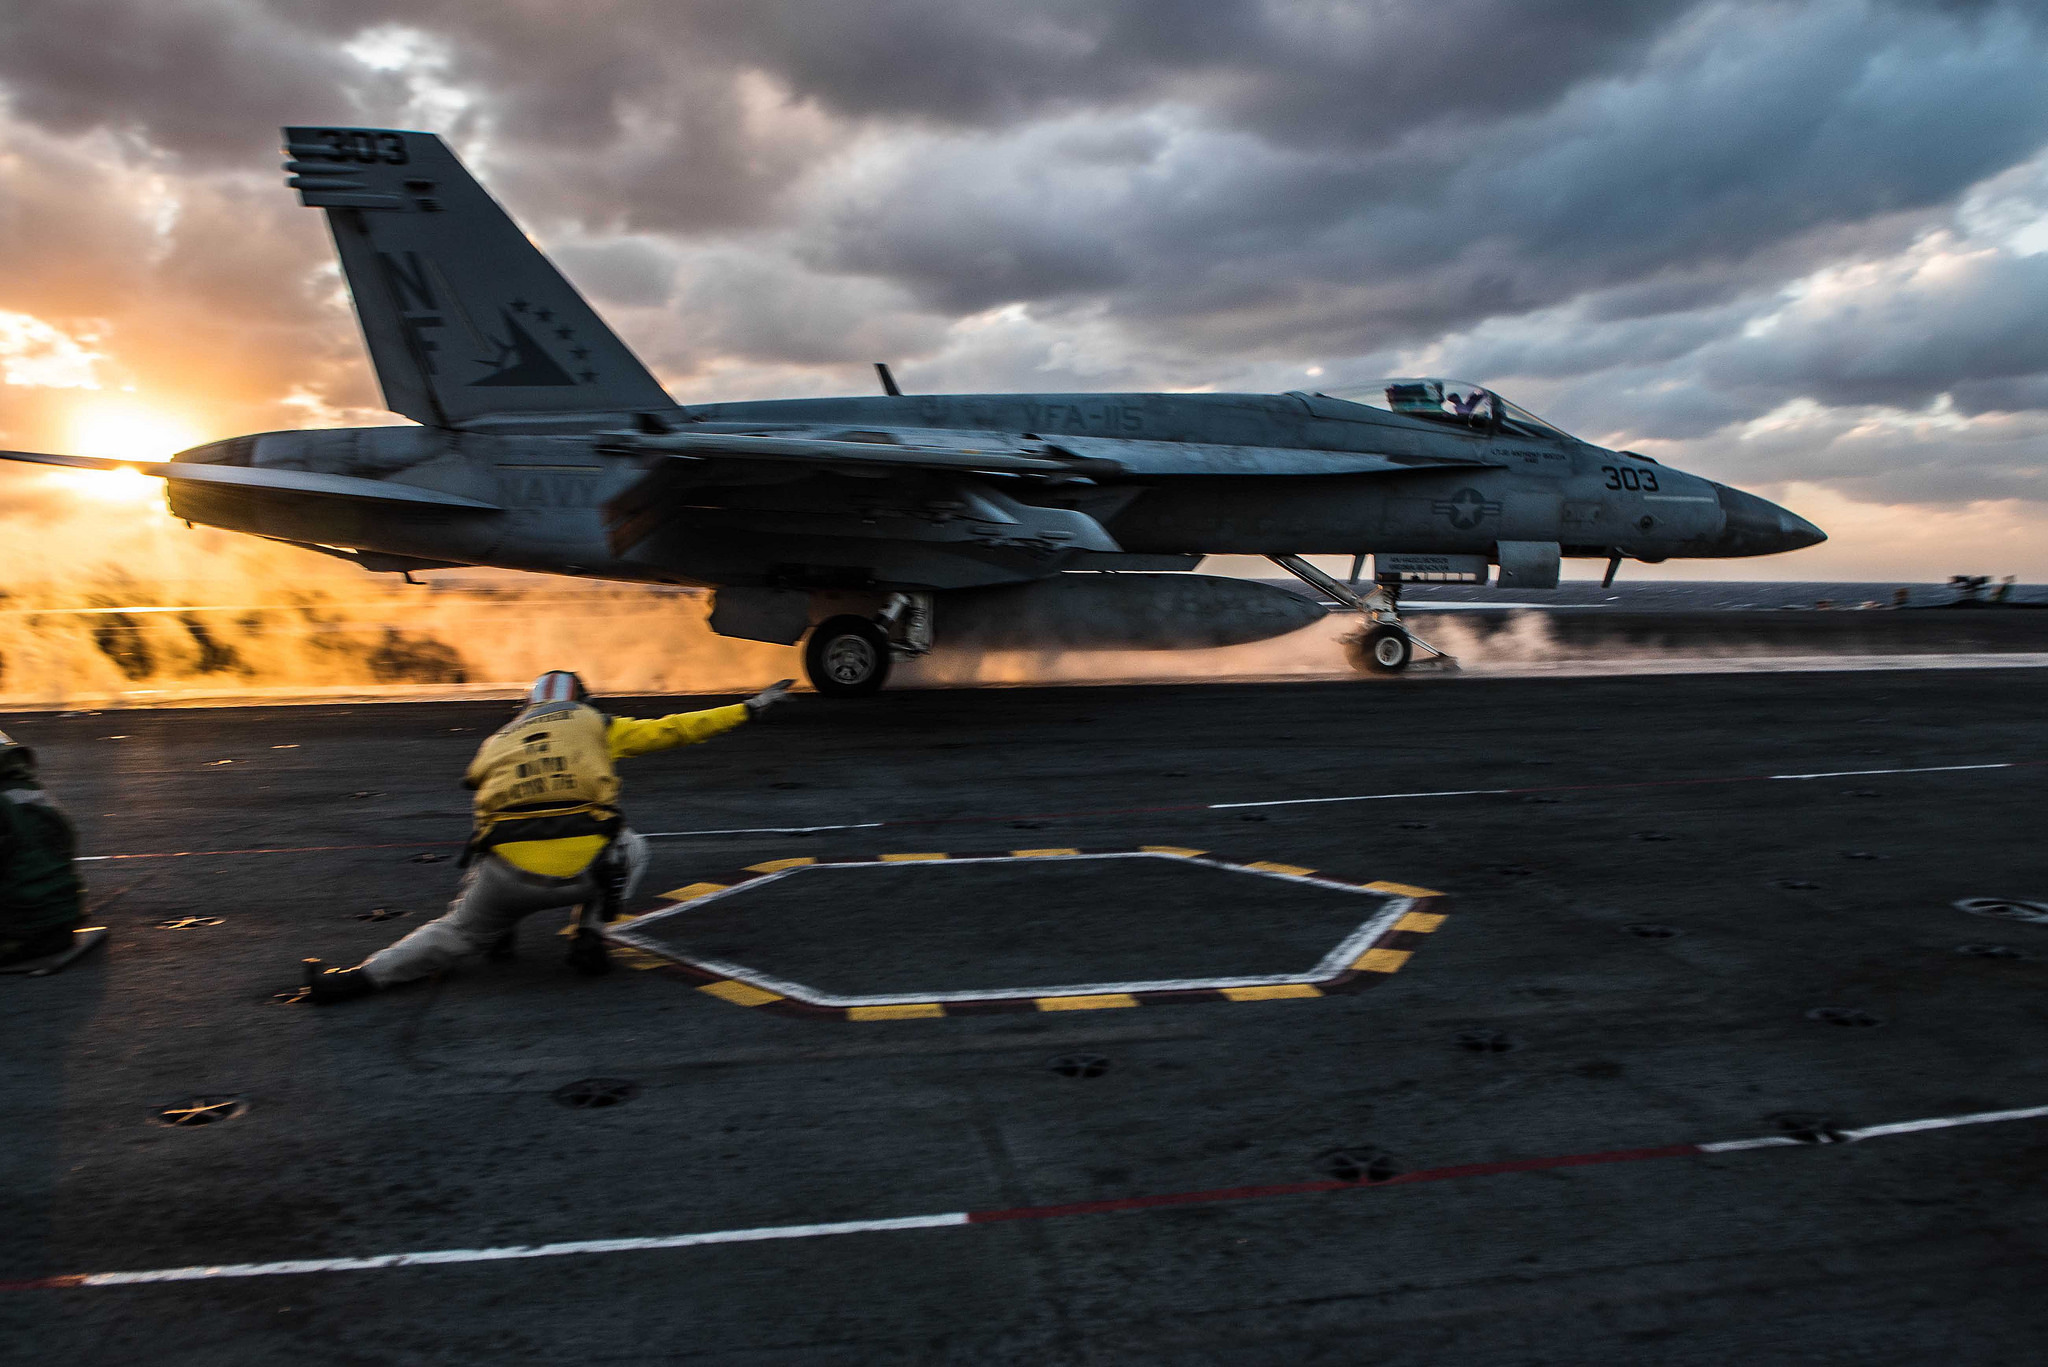 An F/A-18E Super Hornet of Strike Fighter Squadron (VFA) 115 launches from the flight deck of the Navy's forward-deployed aircraft carrier USS Ronald Reagan (CVN 76) on Nov .11, 2017, in the western Pacific Ocean. (MC2 Janweb B. Lagazo/Navy)